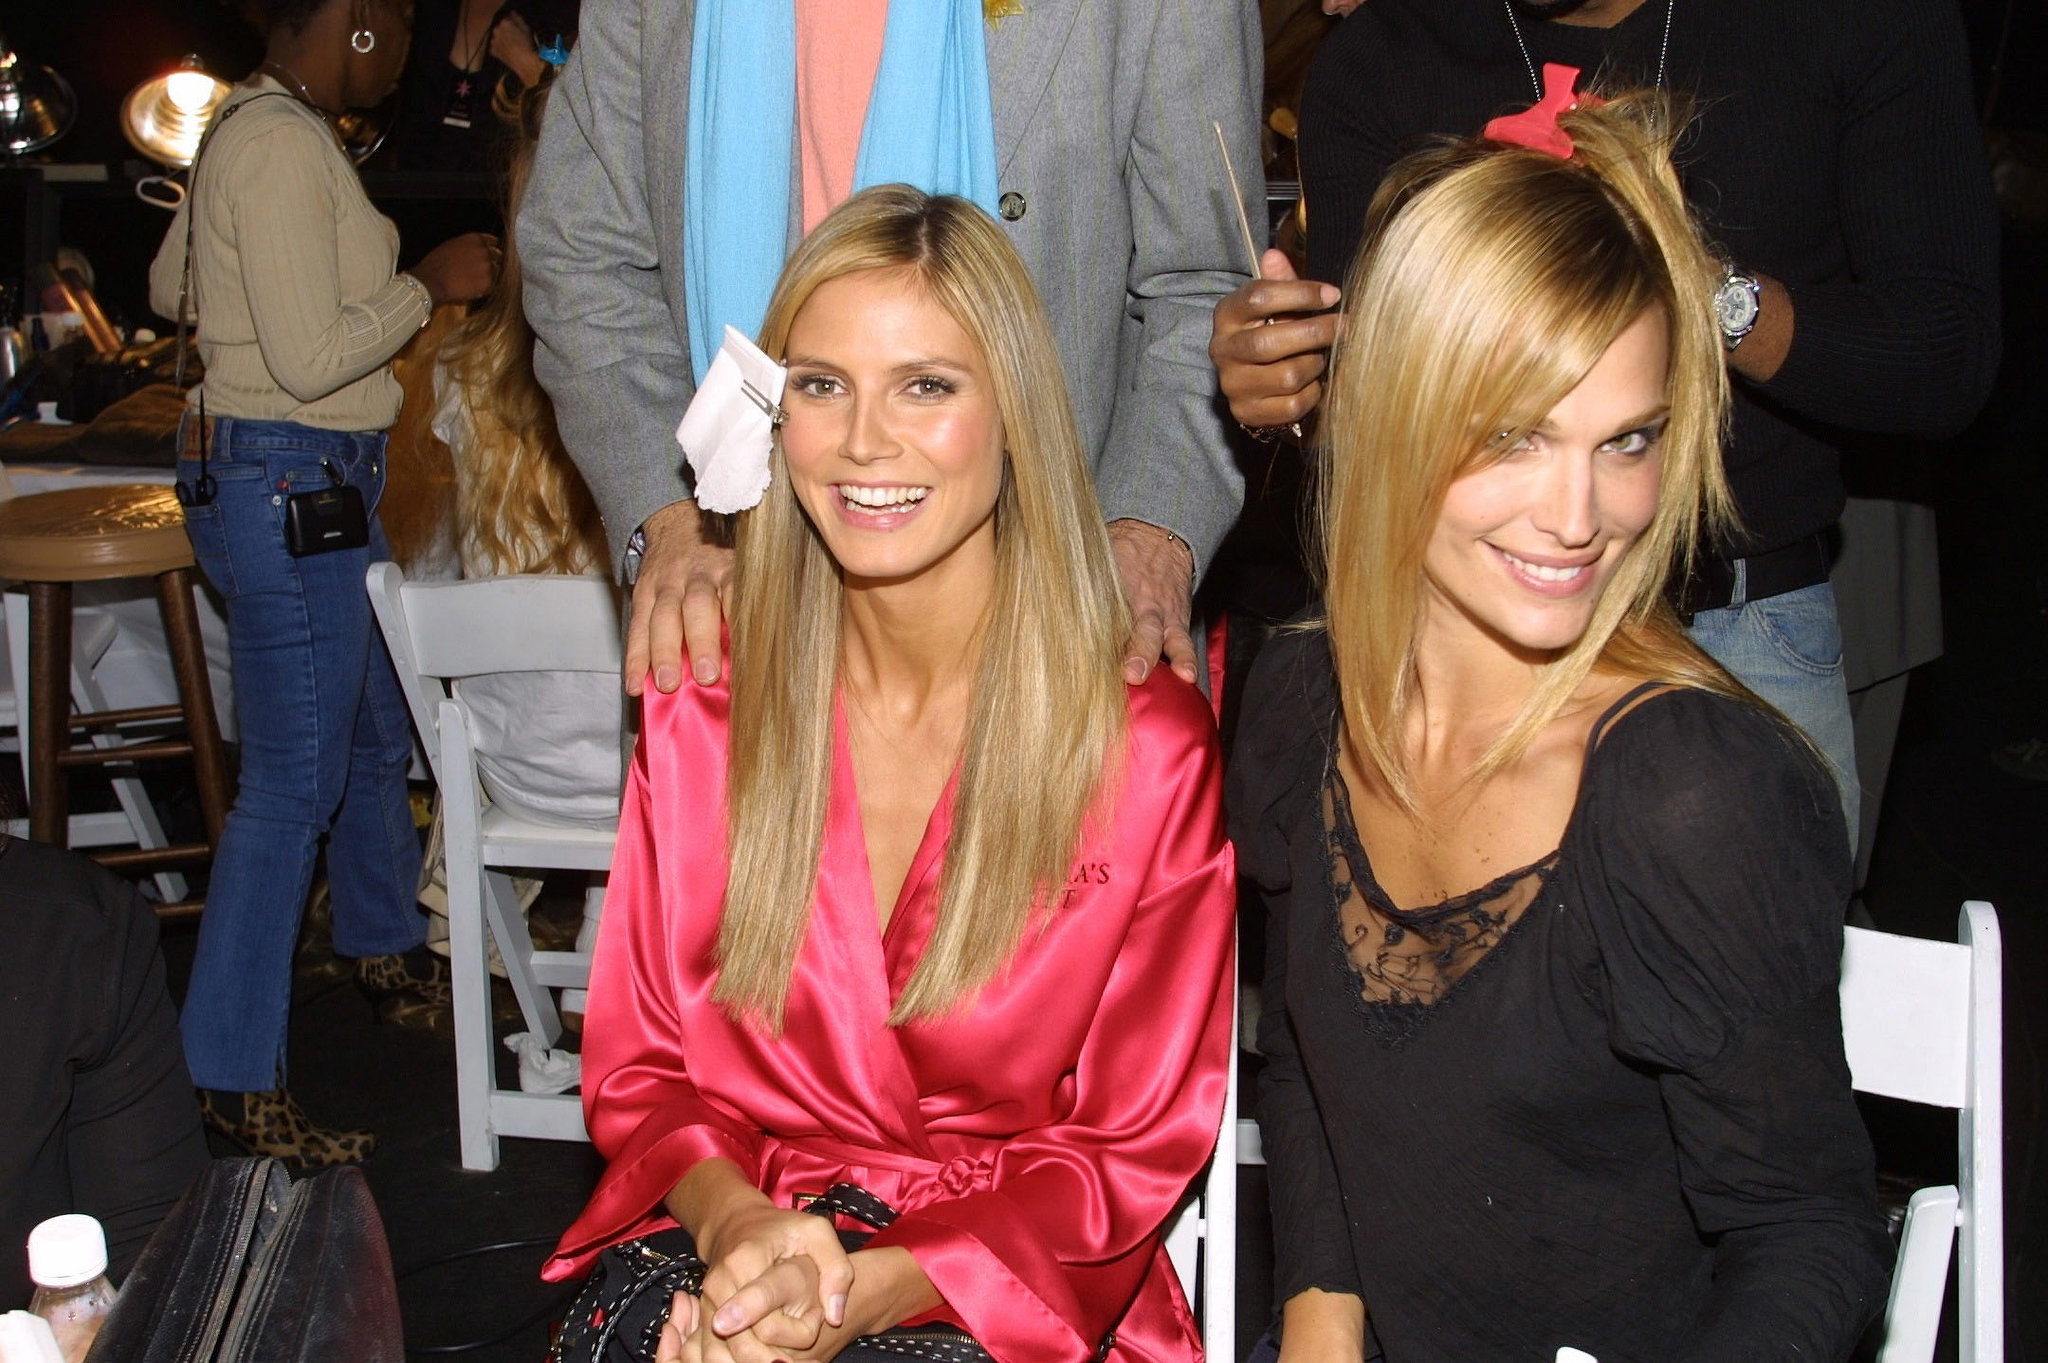 Heidi Klum and Molly Sims hung backstage in 2001.